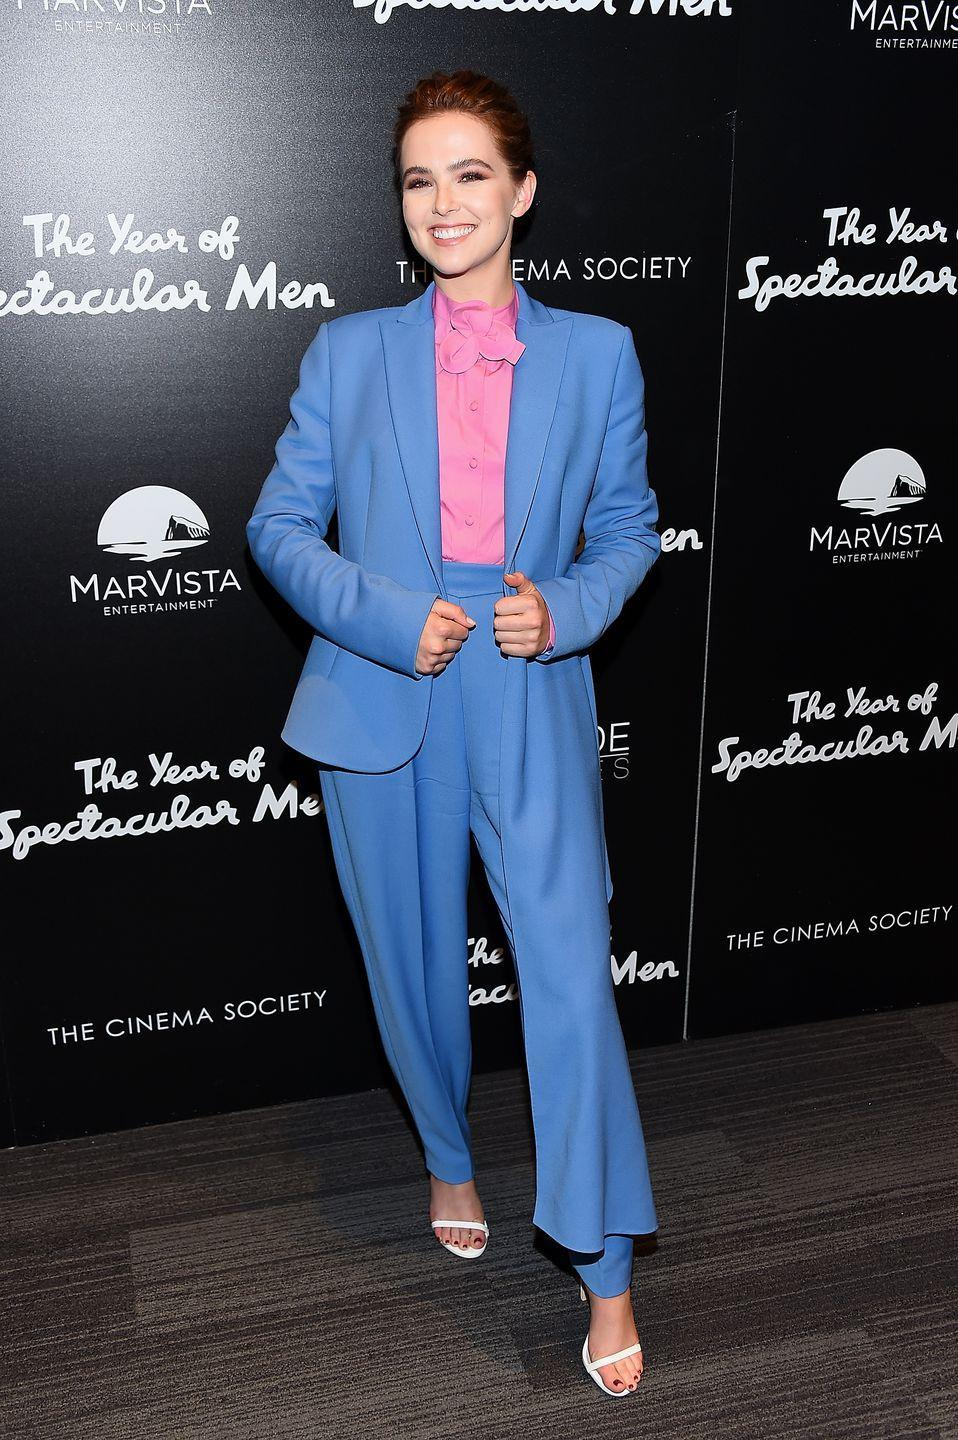 <p>The actress wore a Delpozo suit to <em>The Year Of Spectacular Men </em>screening in New York.</p>